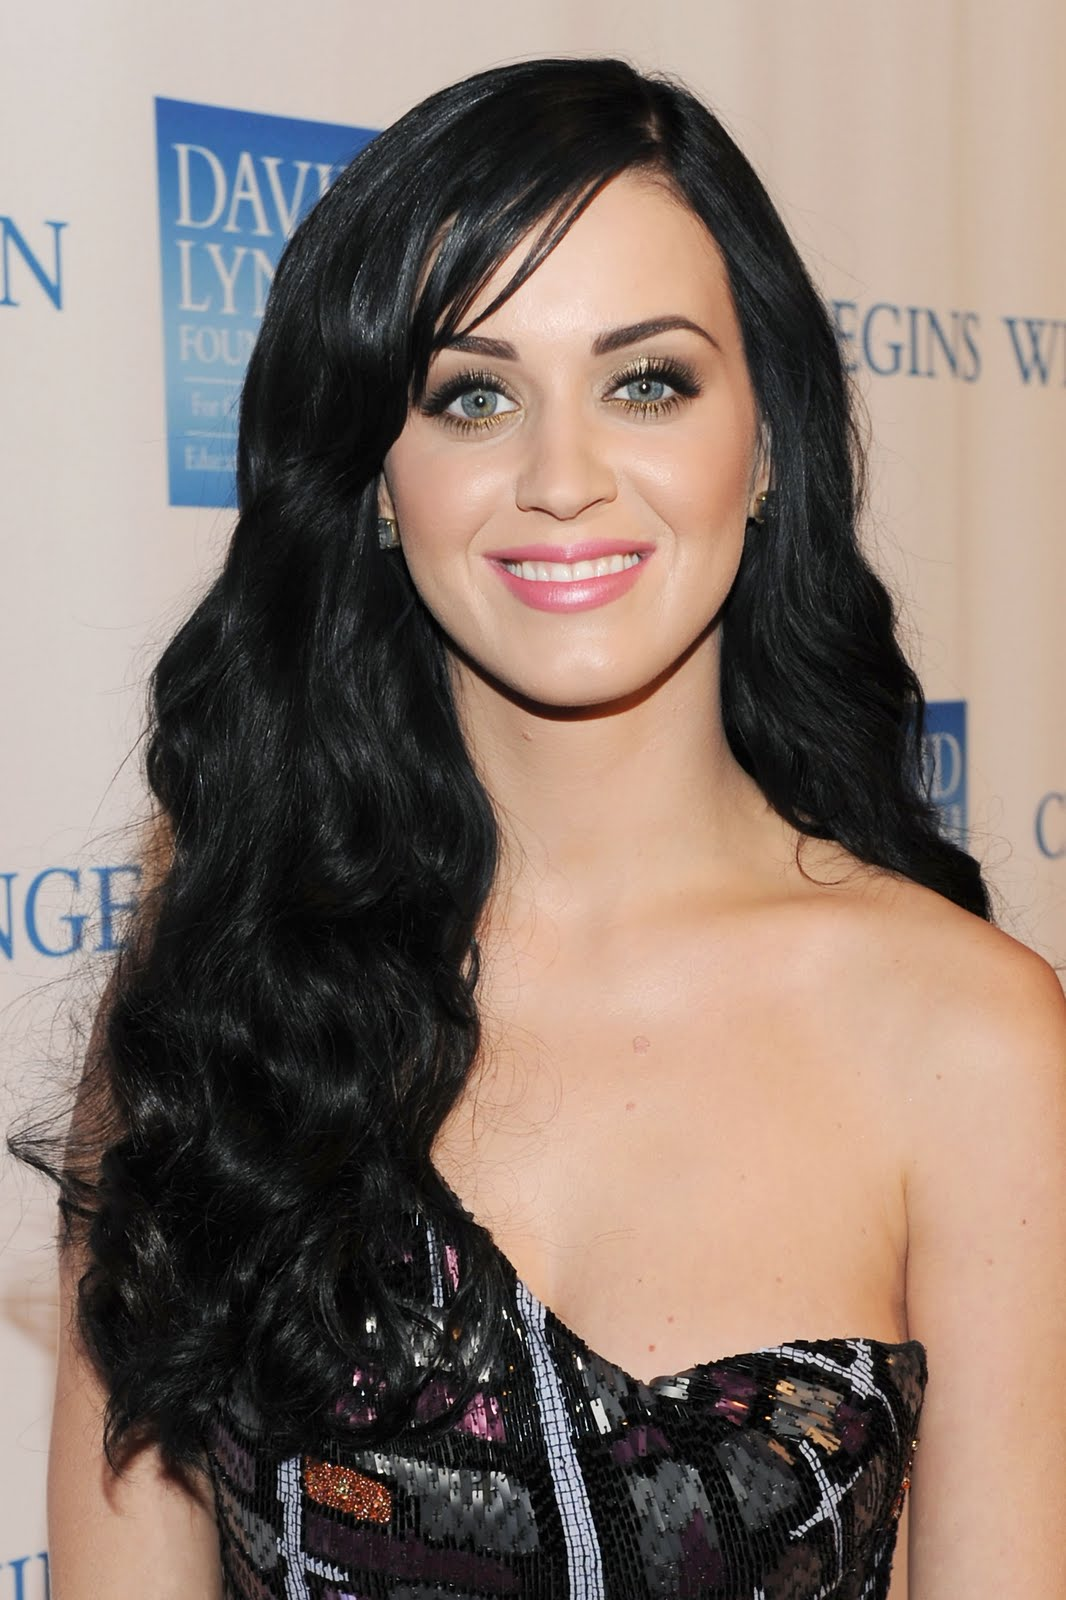 Katy Perry: A New Life Hartz: Russell Brand Katy Perry Sued For